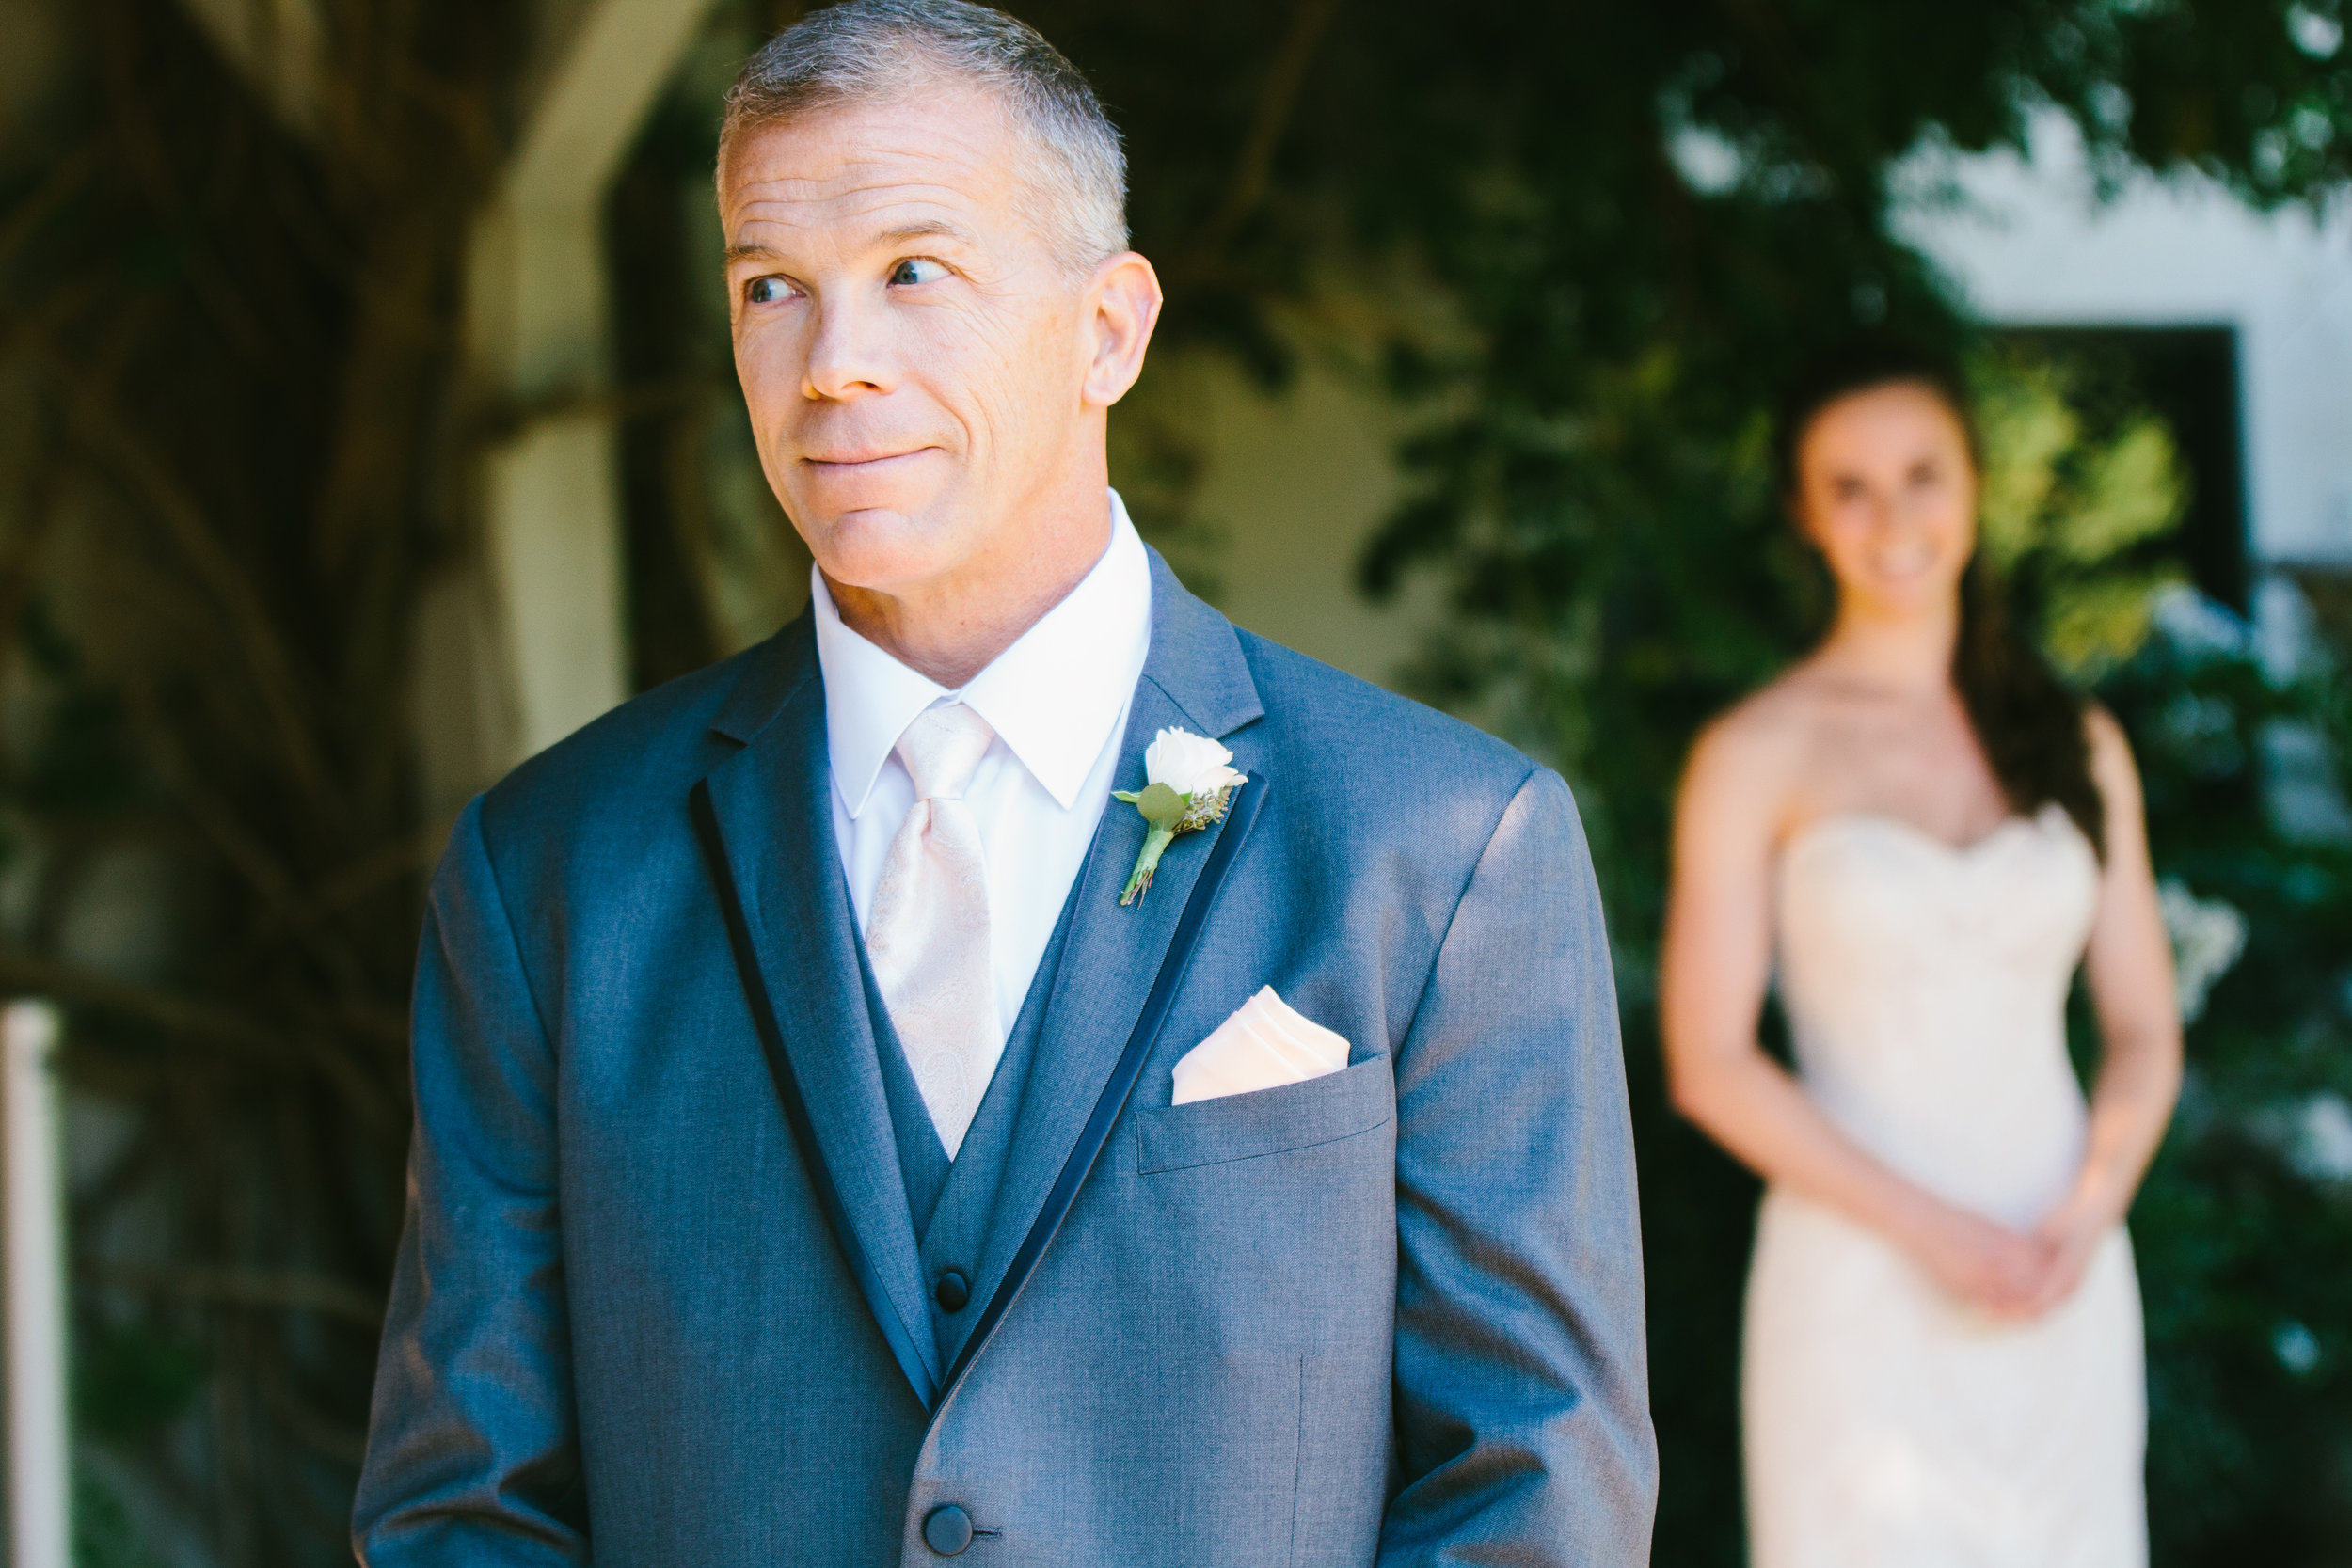 Bride and Father of the Bride First Look - A Champagne + Blush Oklahoma Wedding - Meditations Event Center - From Britt's Eye View Photography